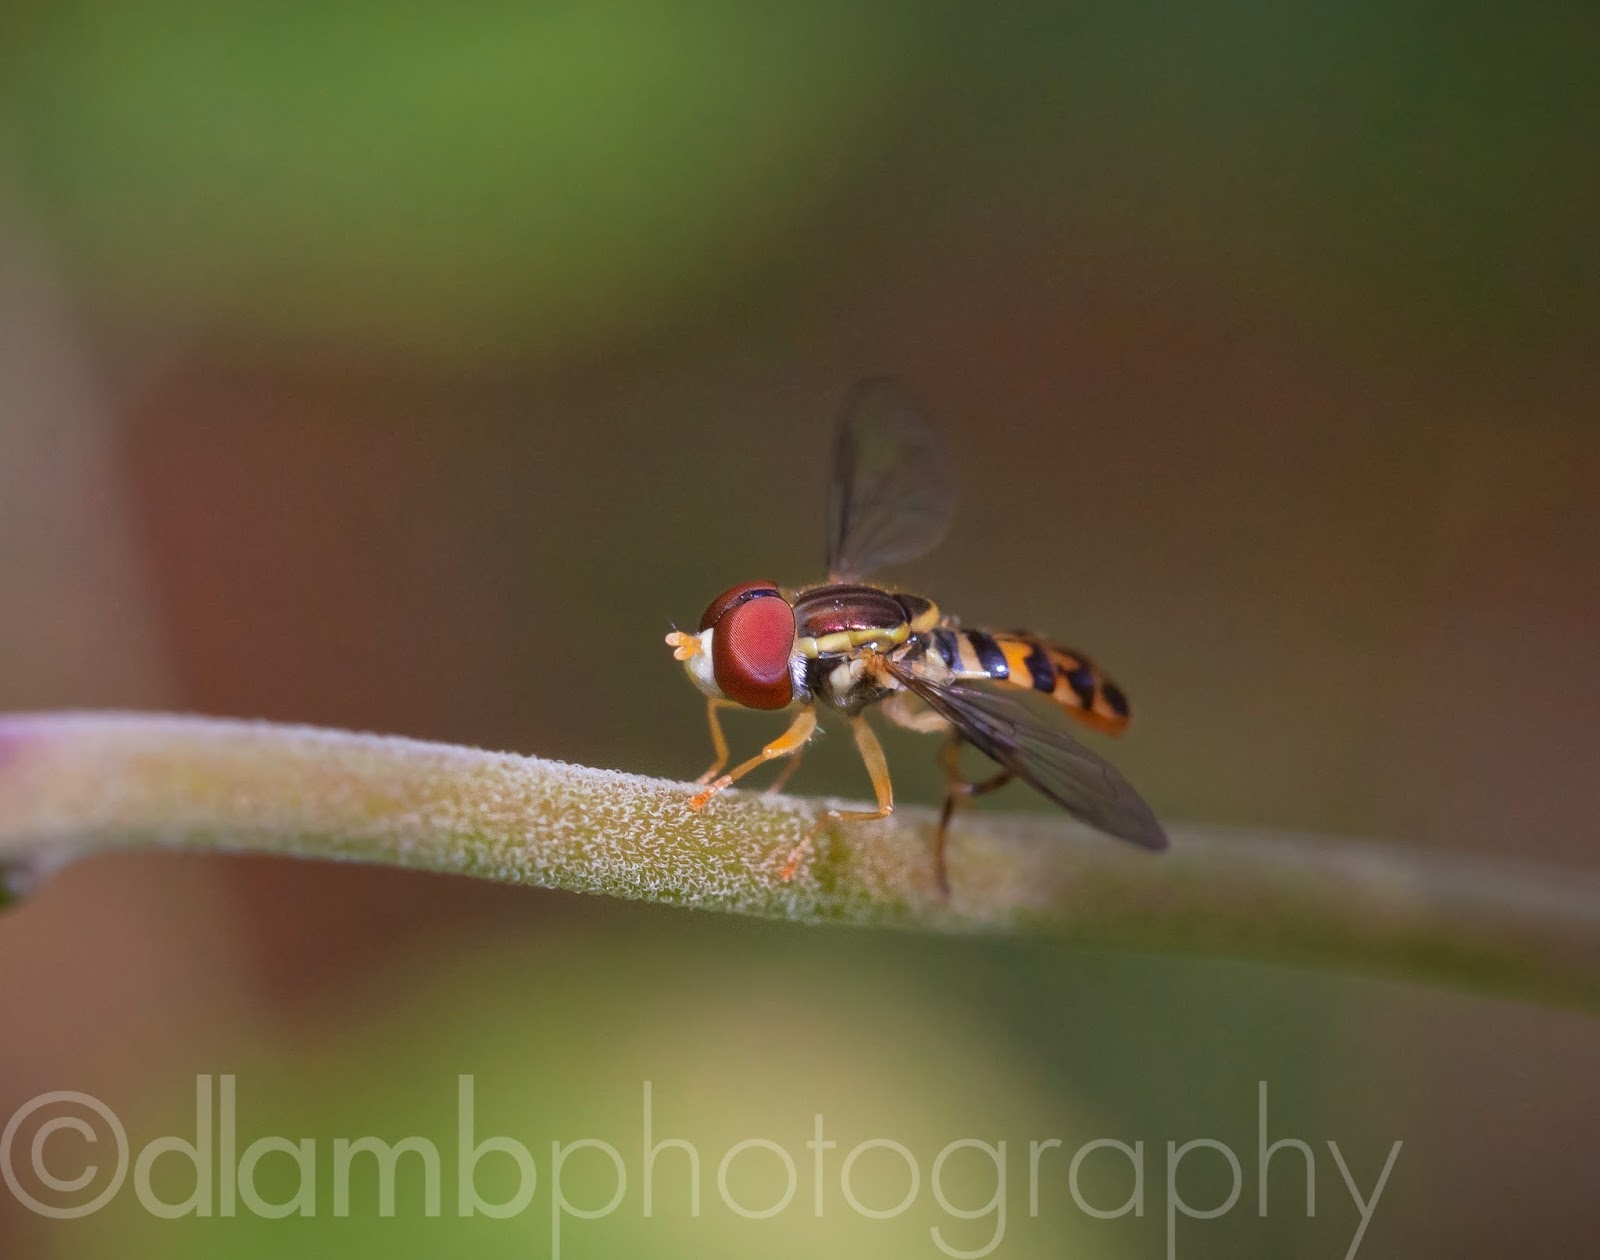 http://david-lamb.artistwebsites.com/featured/hoverfly-warming-in-the-sunlight-david-lamb.html